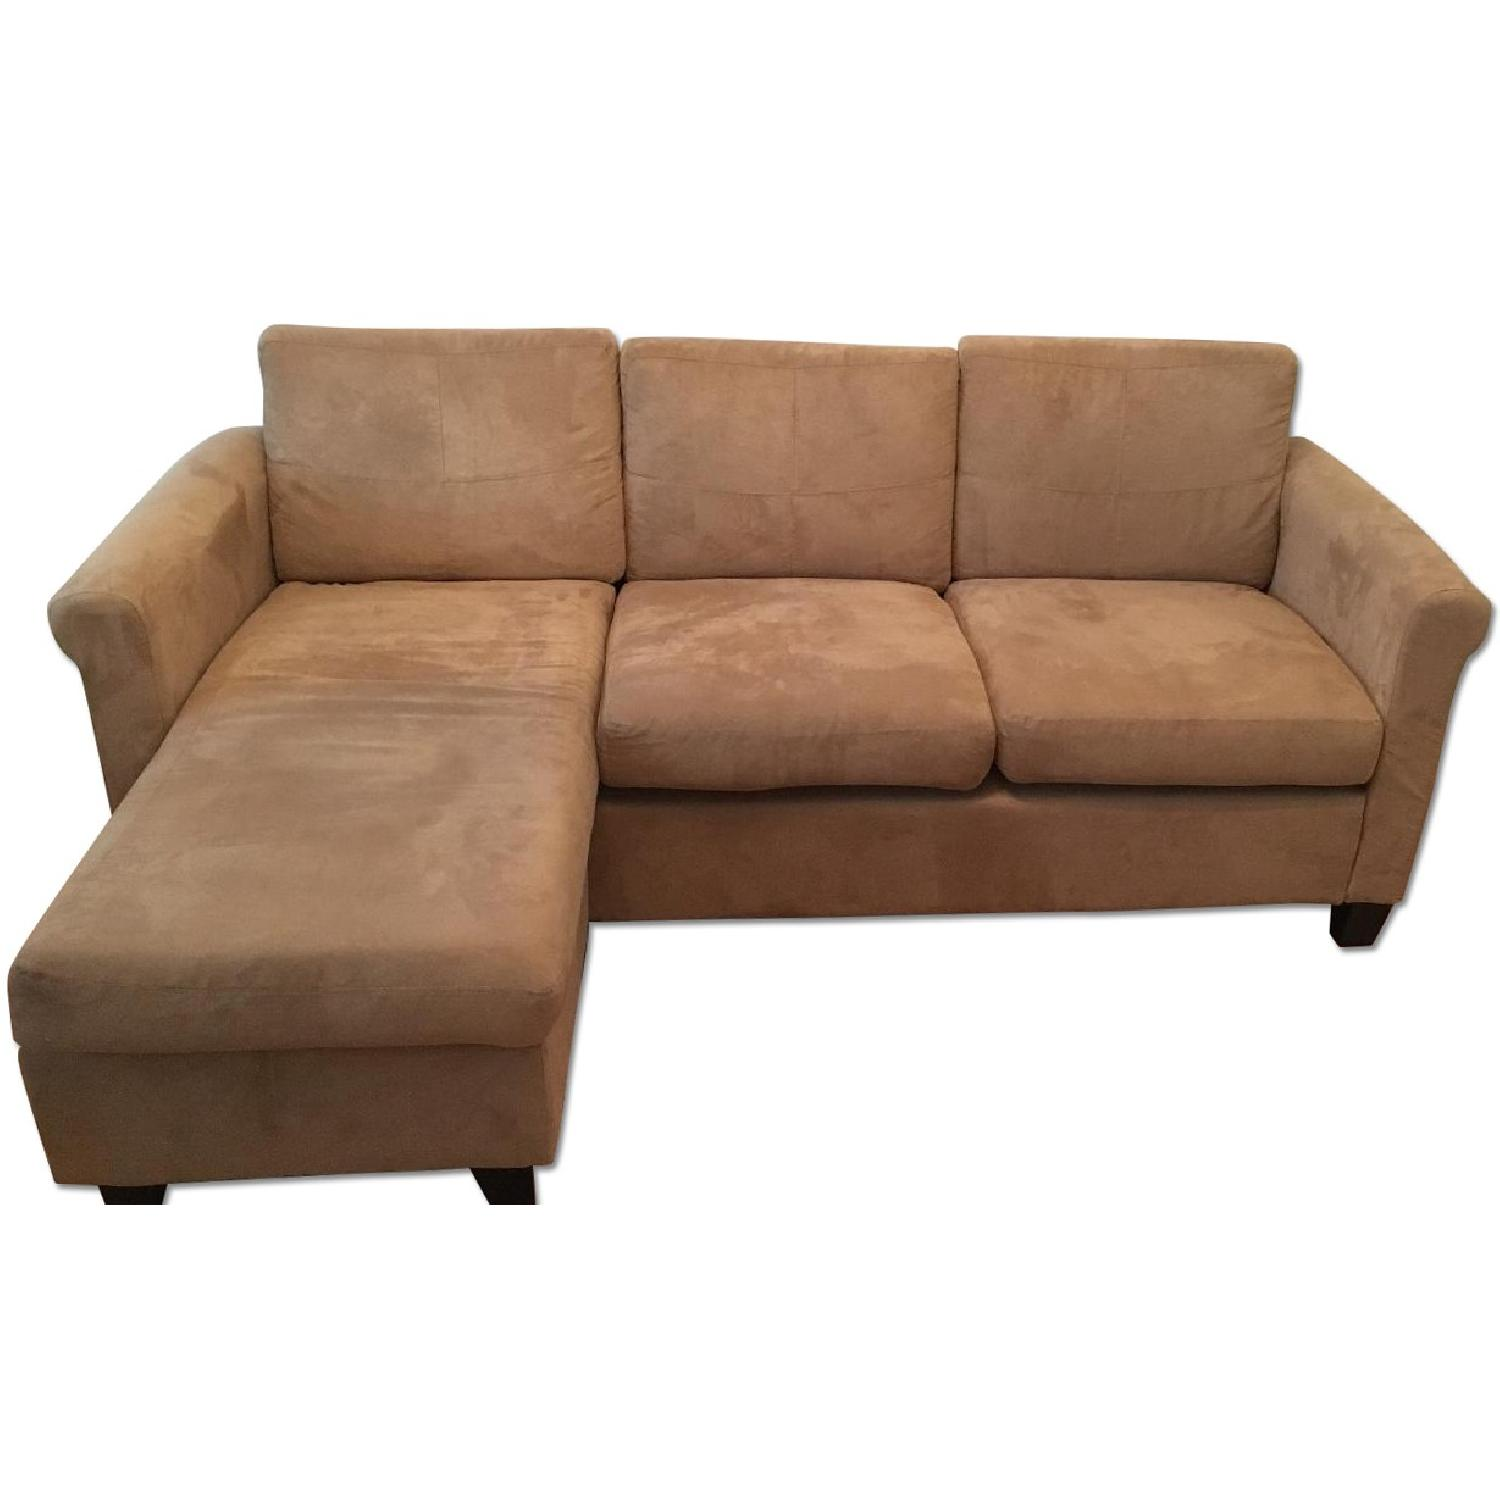 Beige Sectional Sofa - image-0